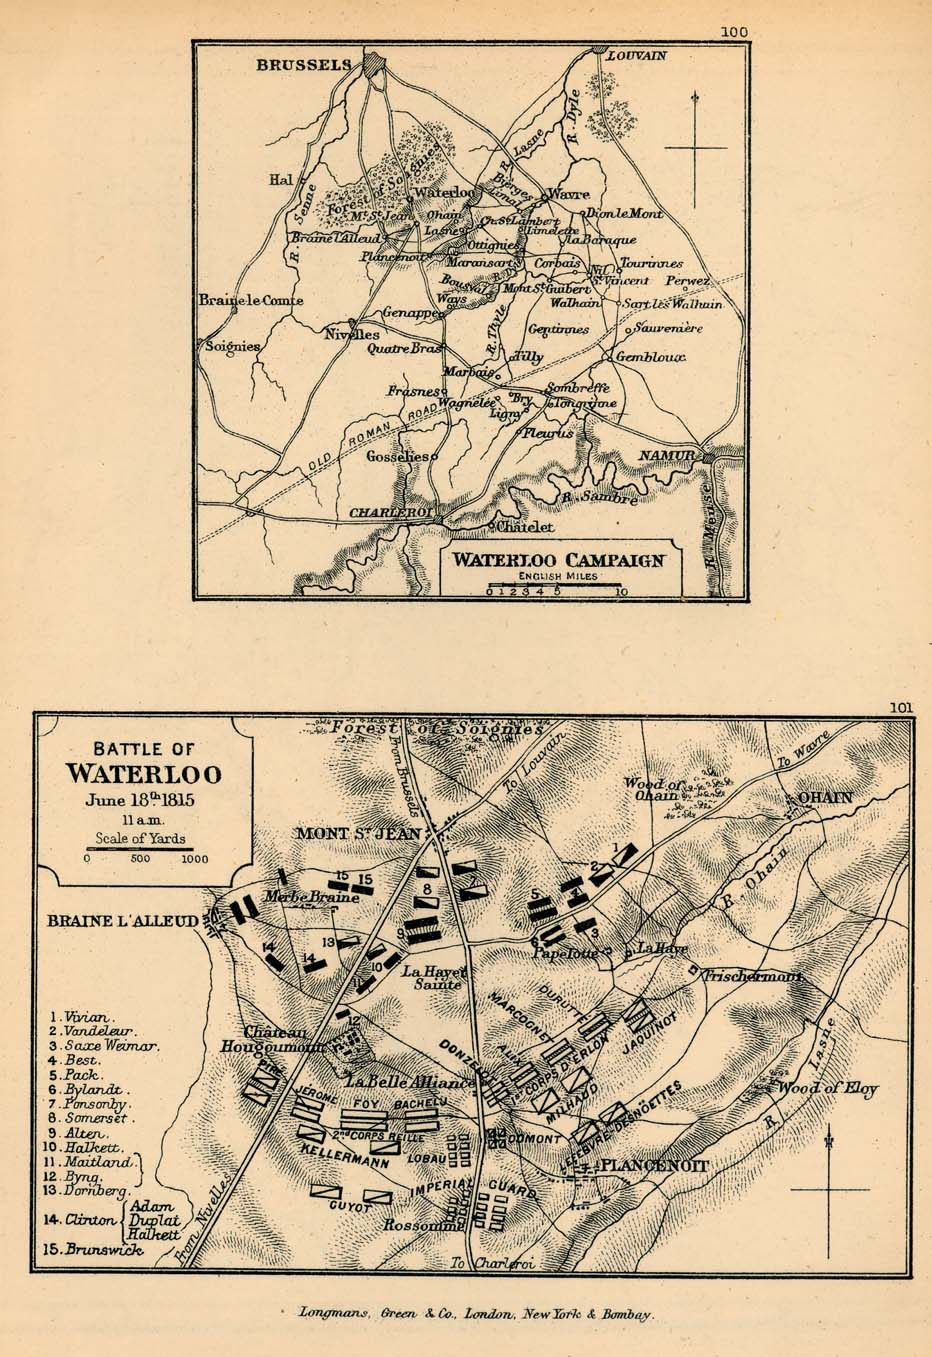 Map of Waterloo Campaign and Battle